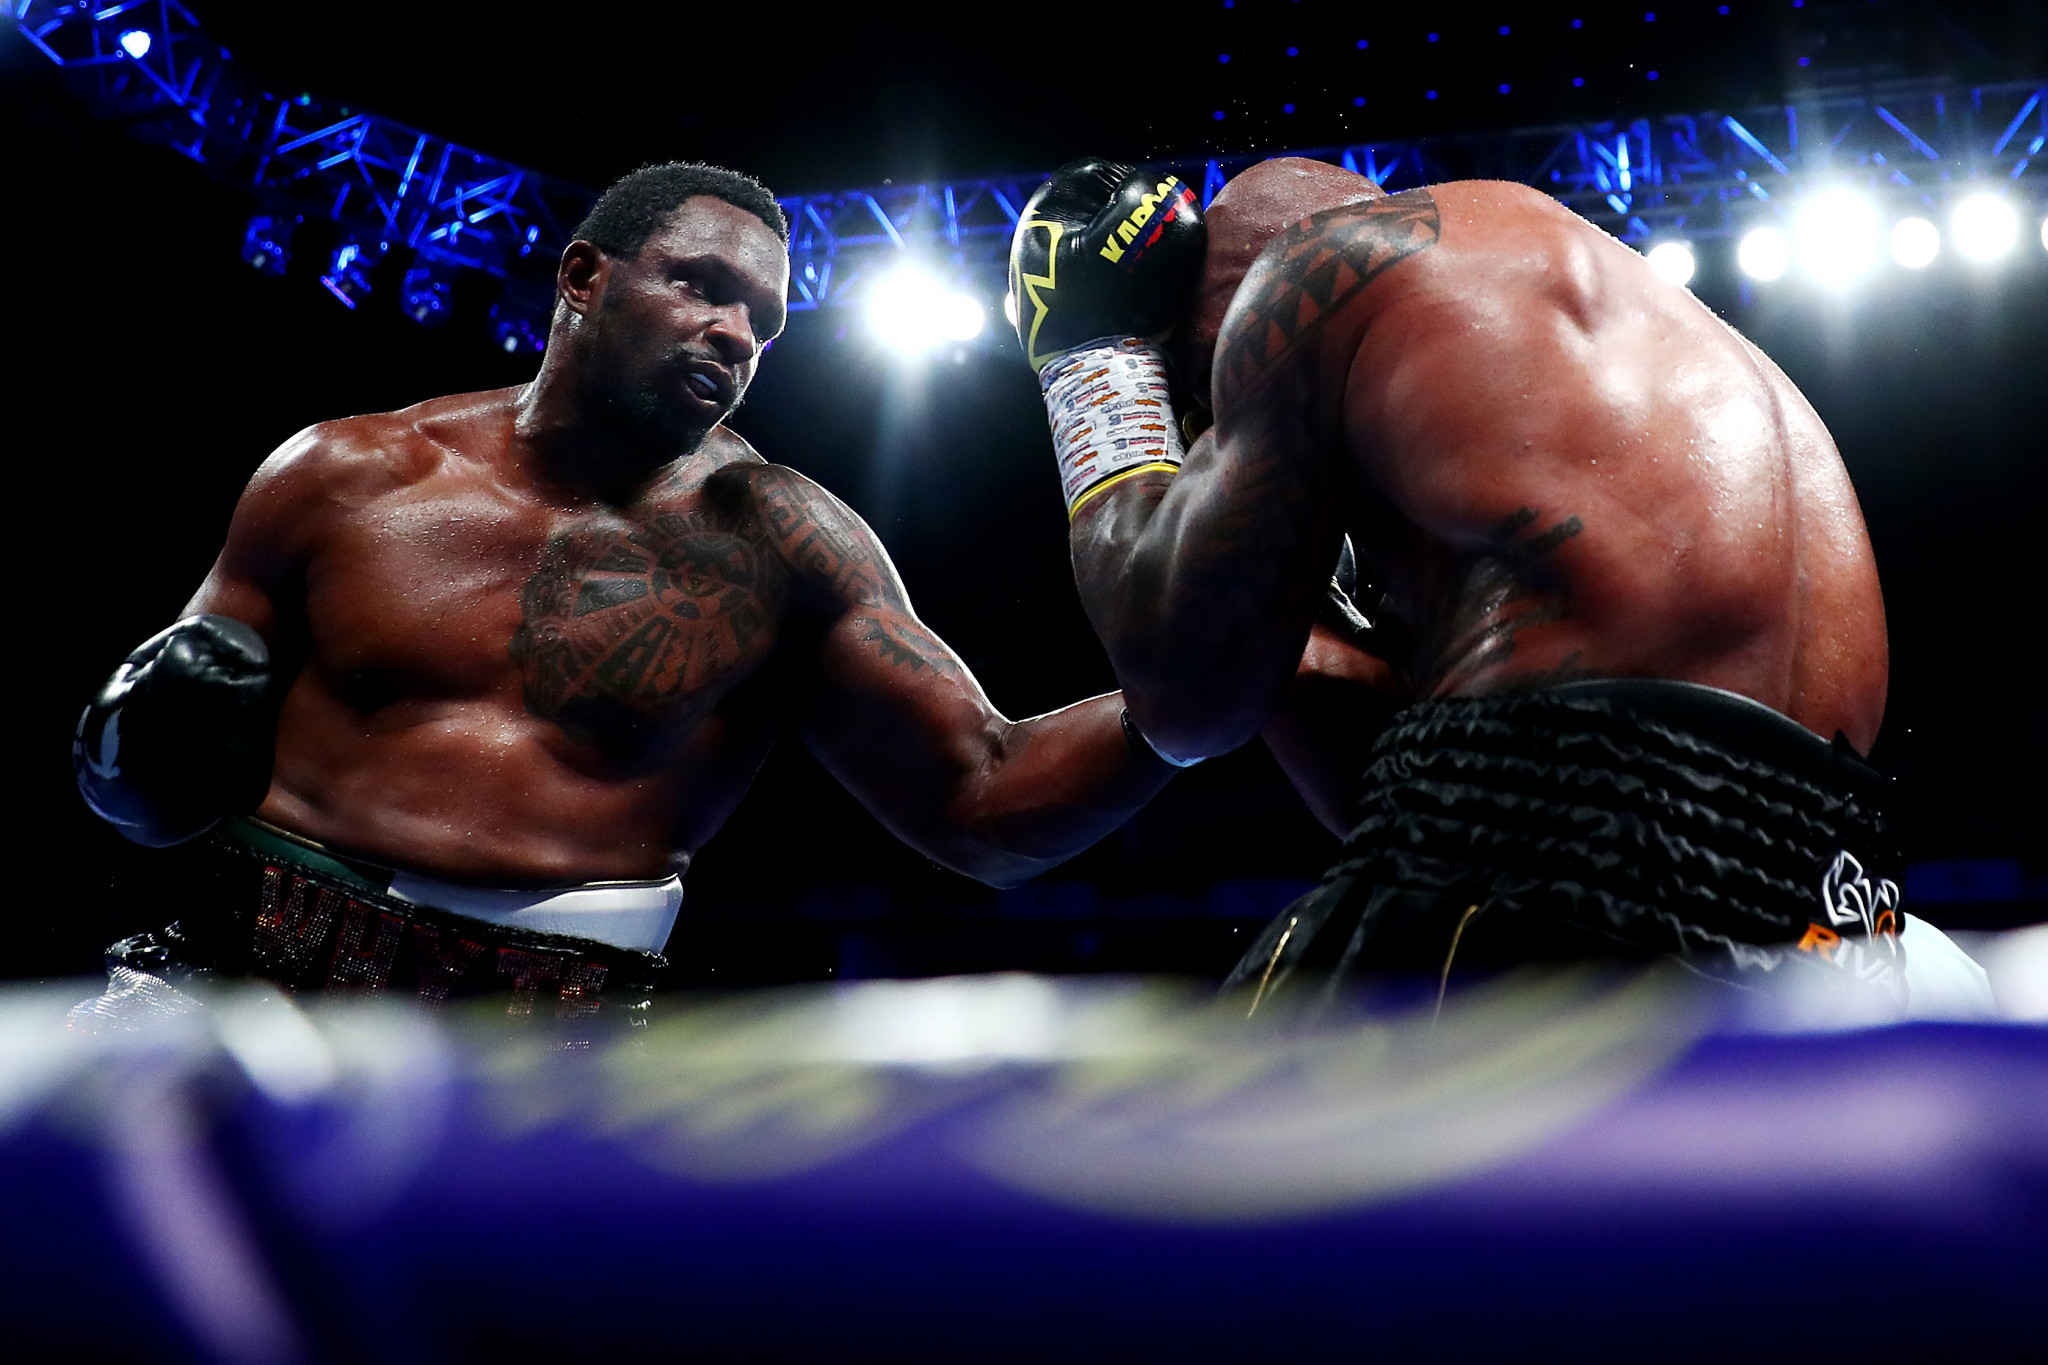 WBC provisionally suspends Whyte's position as interim heavyweight champion after positive test